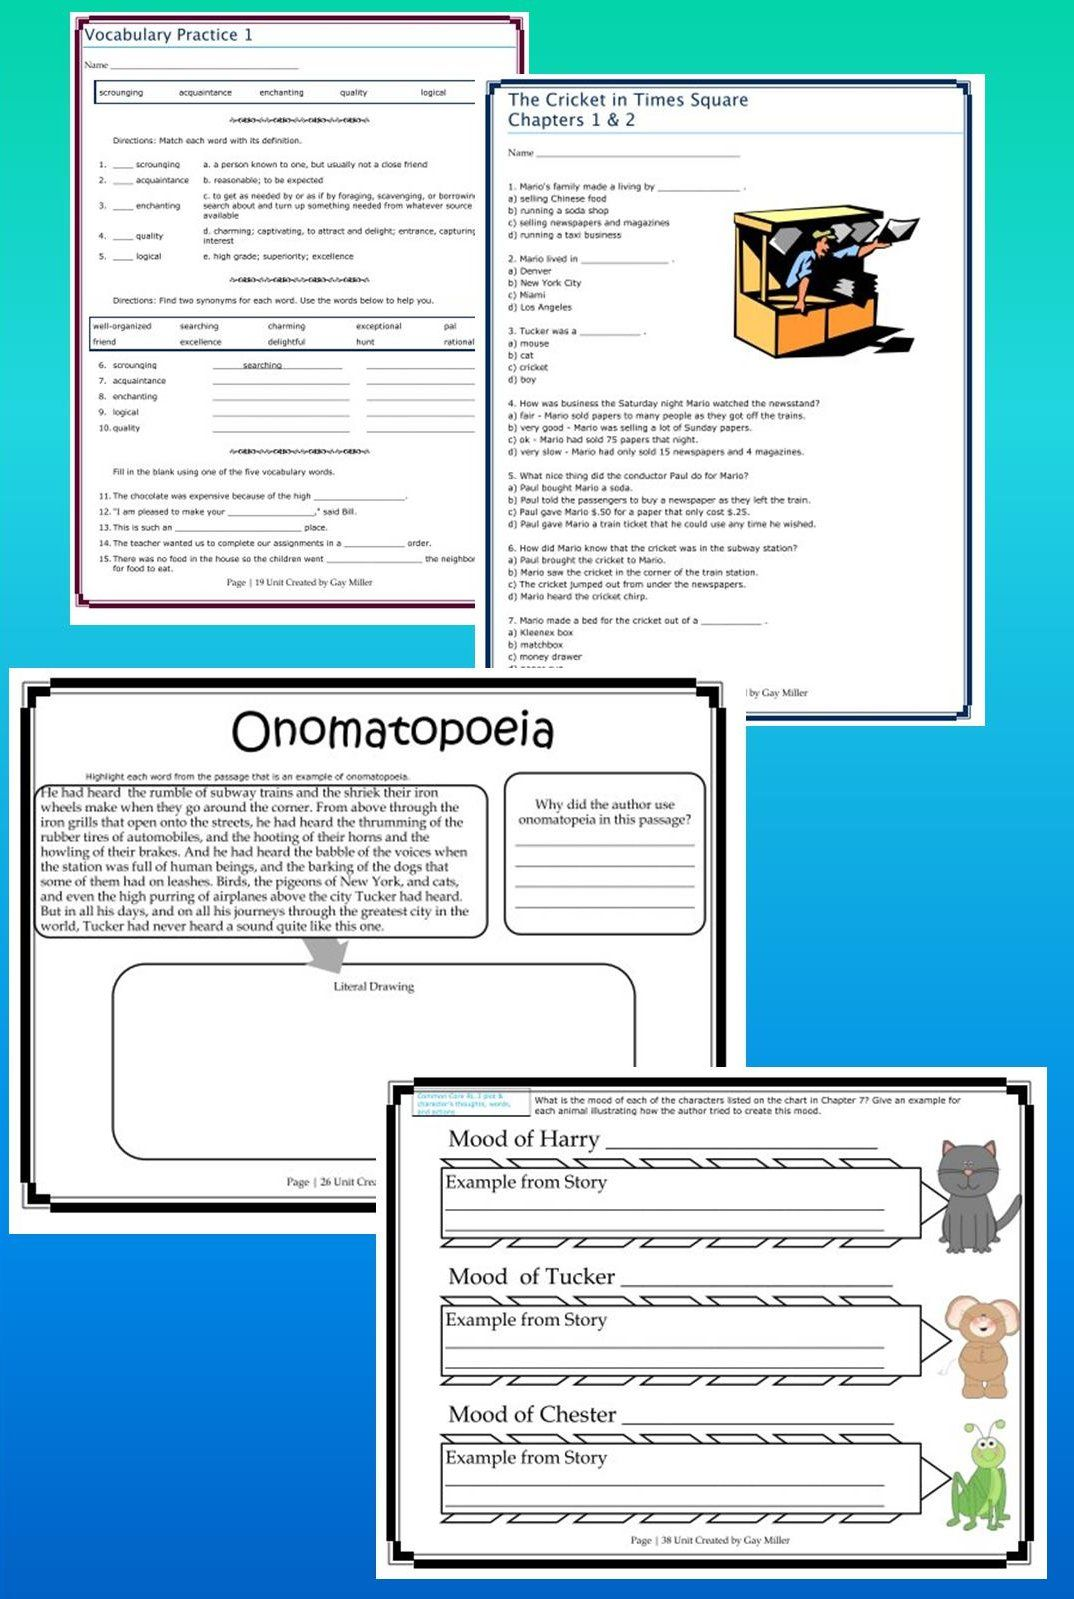 worksheet The Cricket In Times Square Worksheets free teaching resources for the cricket in times square great square